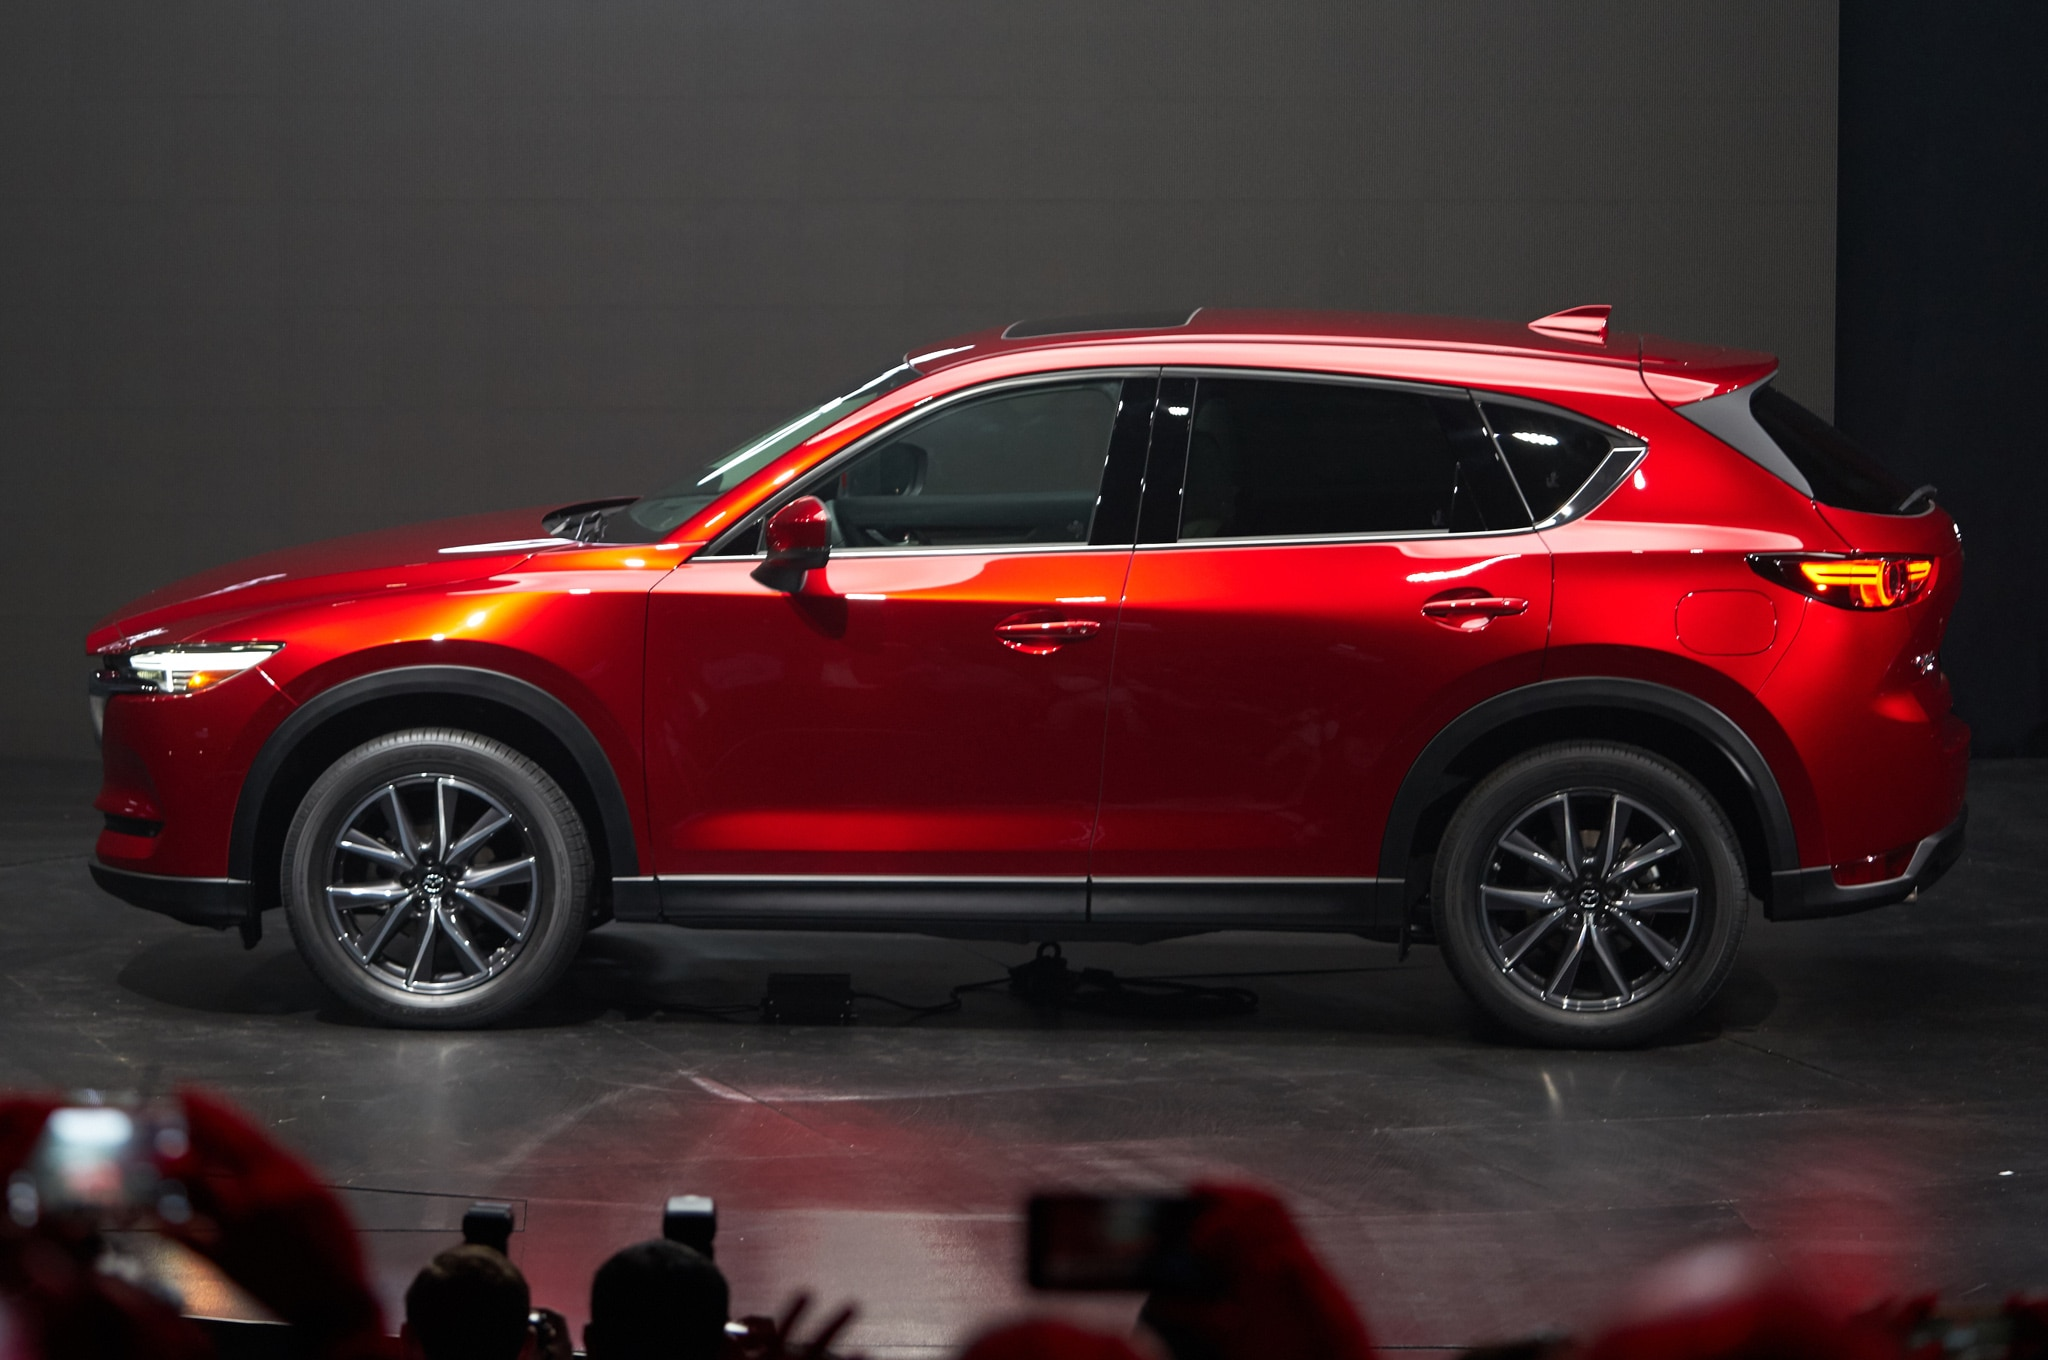 http://st.automobilemag.com/uploads/sites/11/2016/11/2017-Mazda-CX-5-side-view-on-stage.jpg